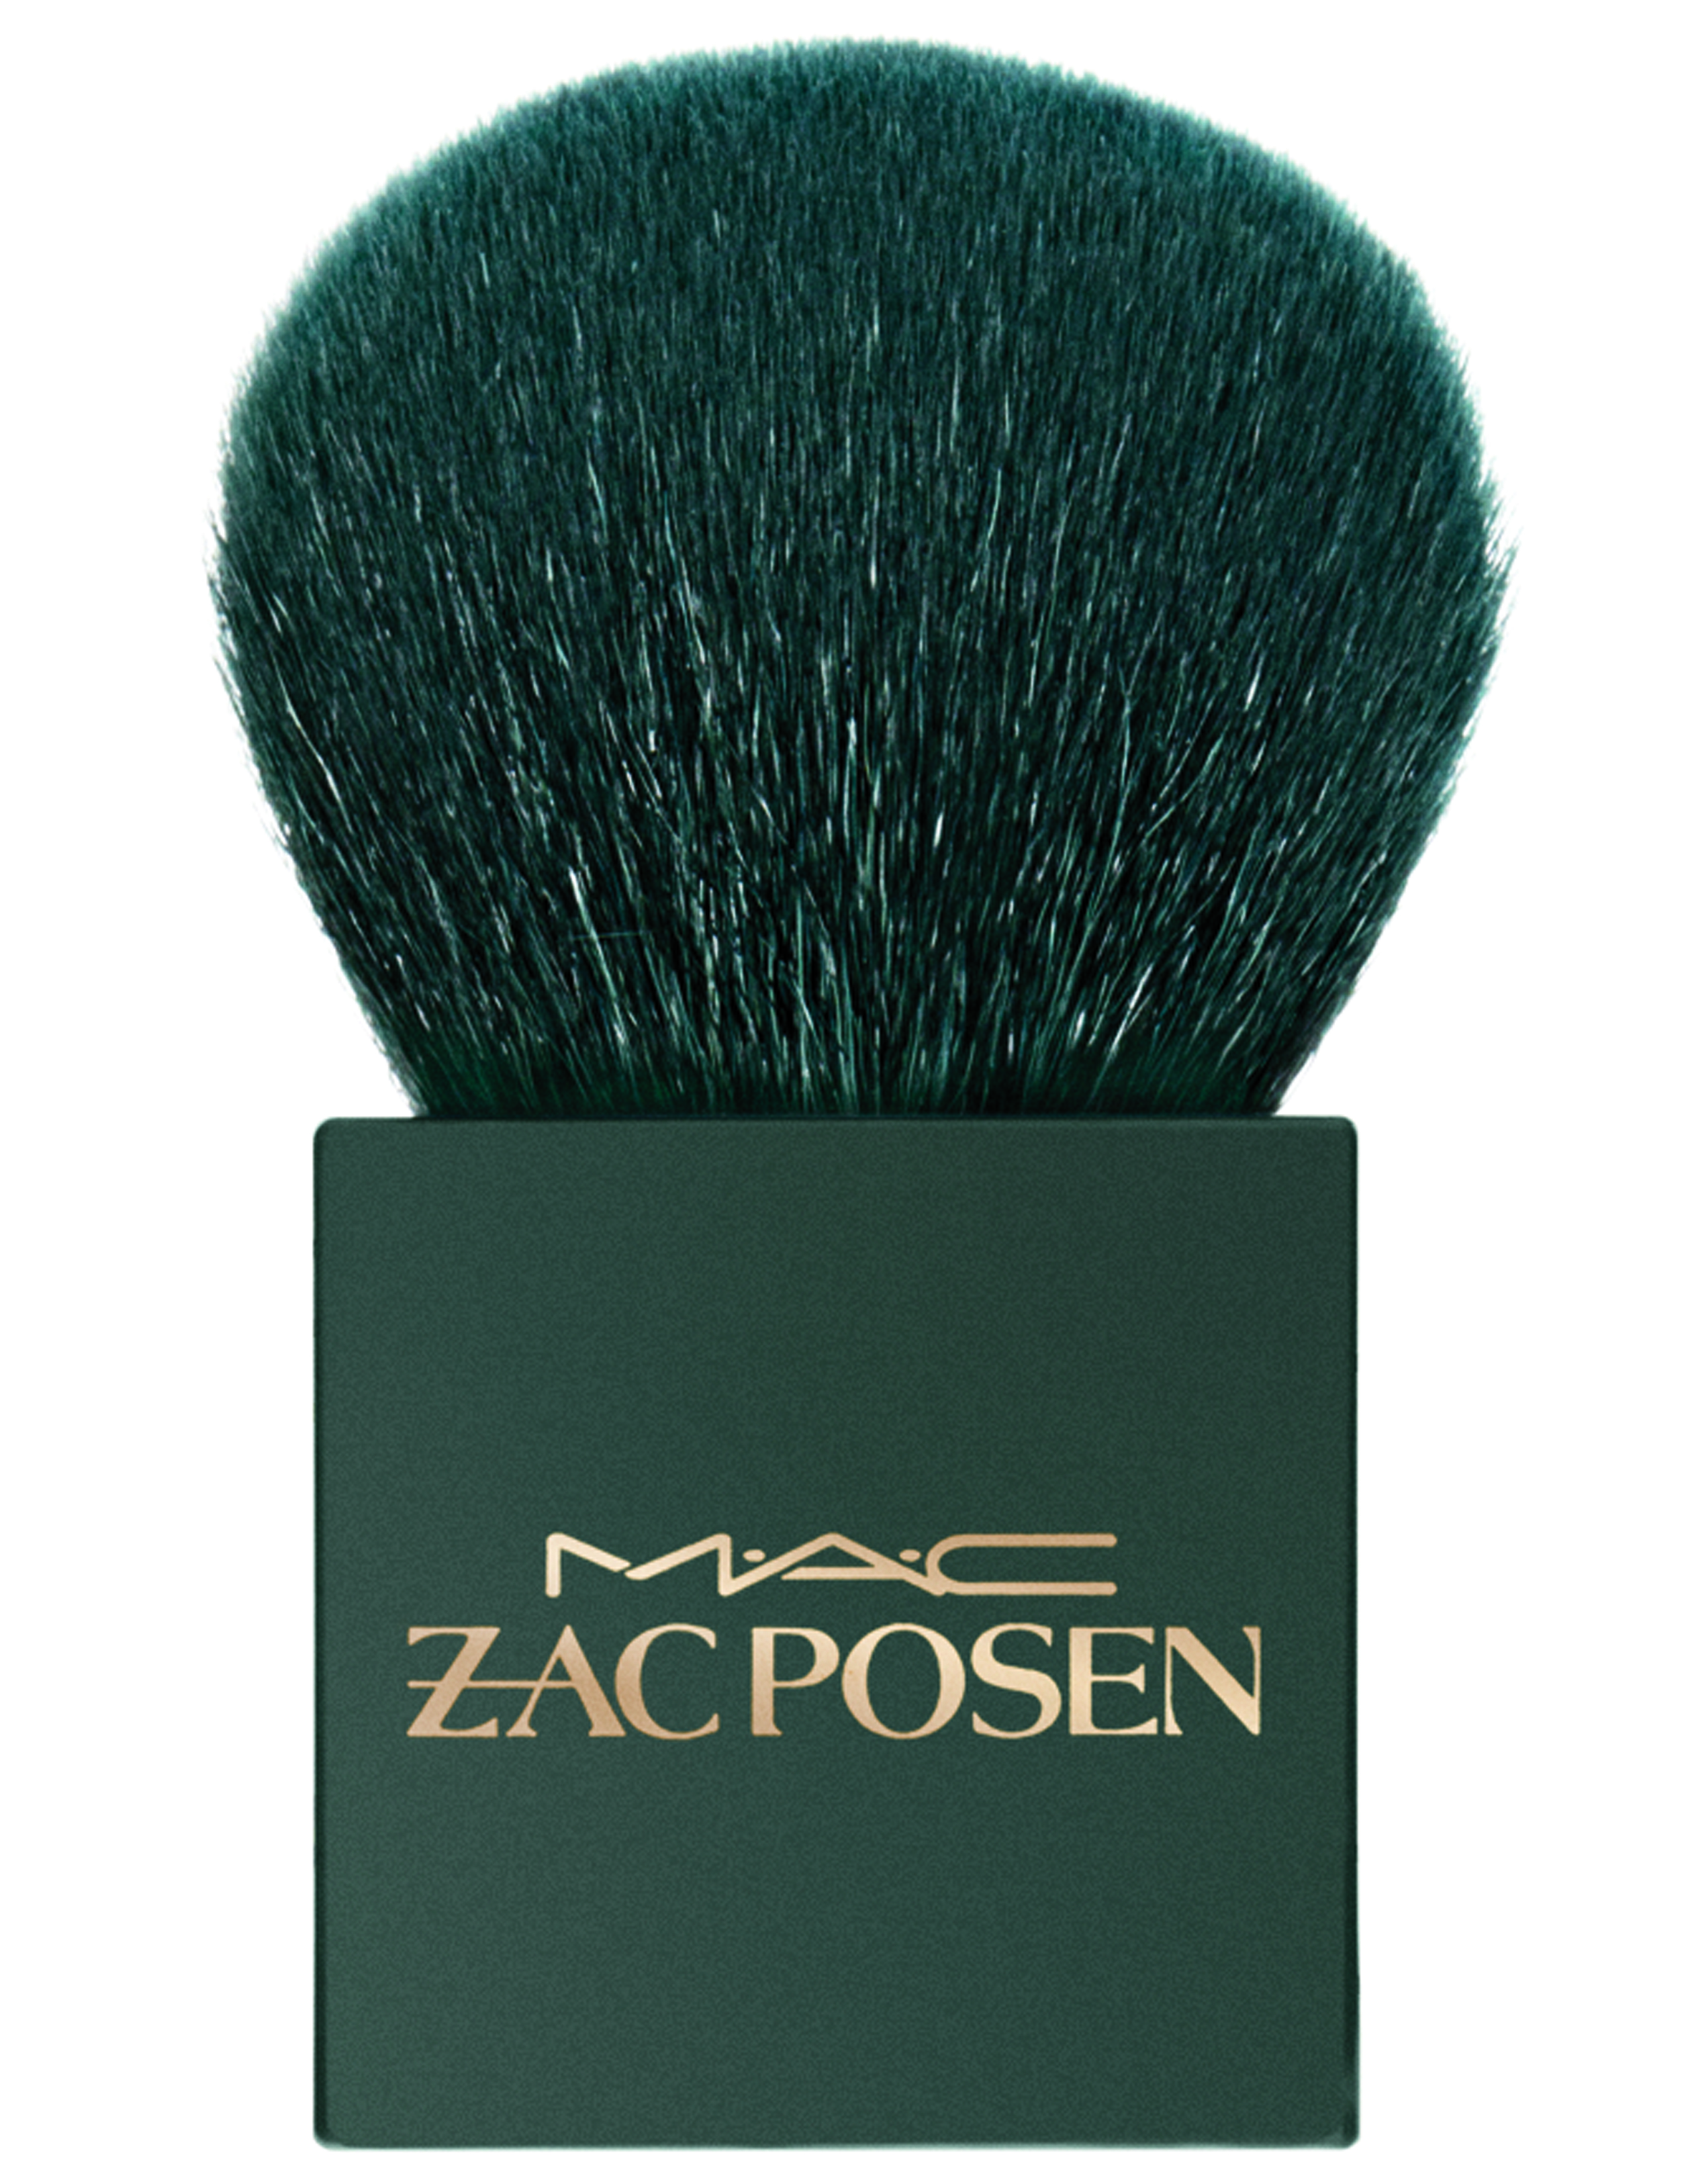 MAC Zac Posen 182BufferBrush white